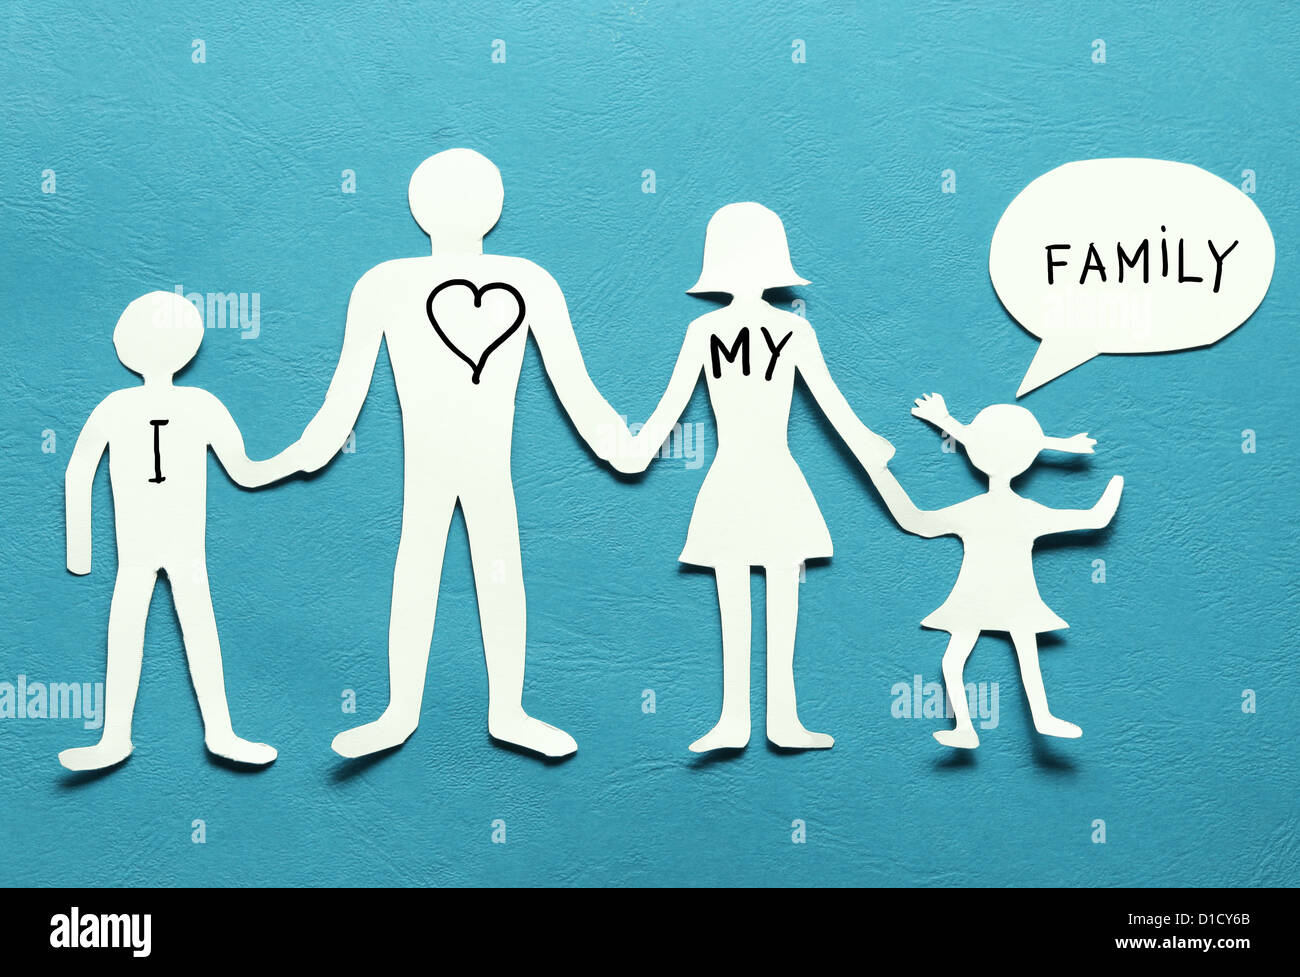 Cardboard figures of the family on a blue background. The symbol of unity and happiness. - Stock Image